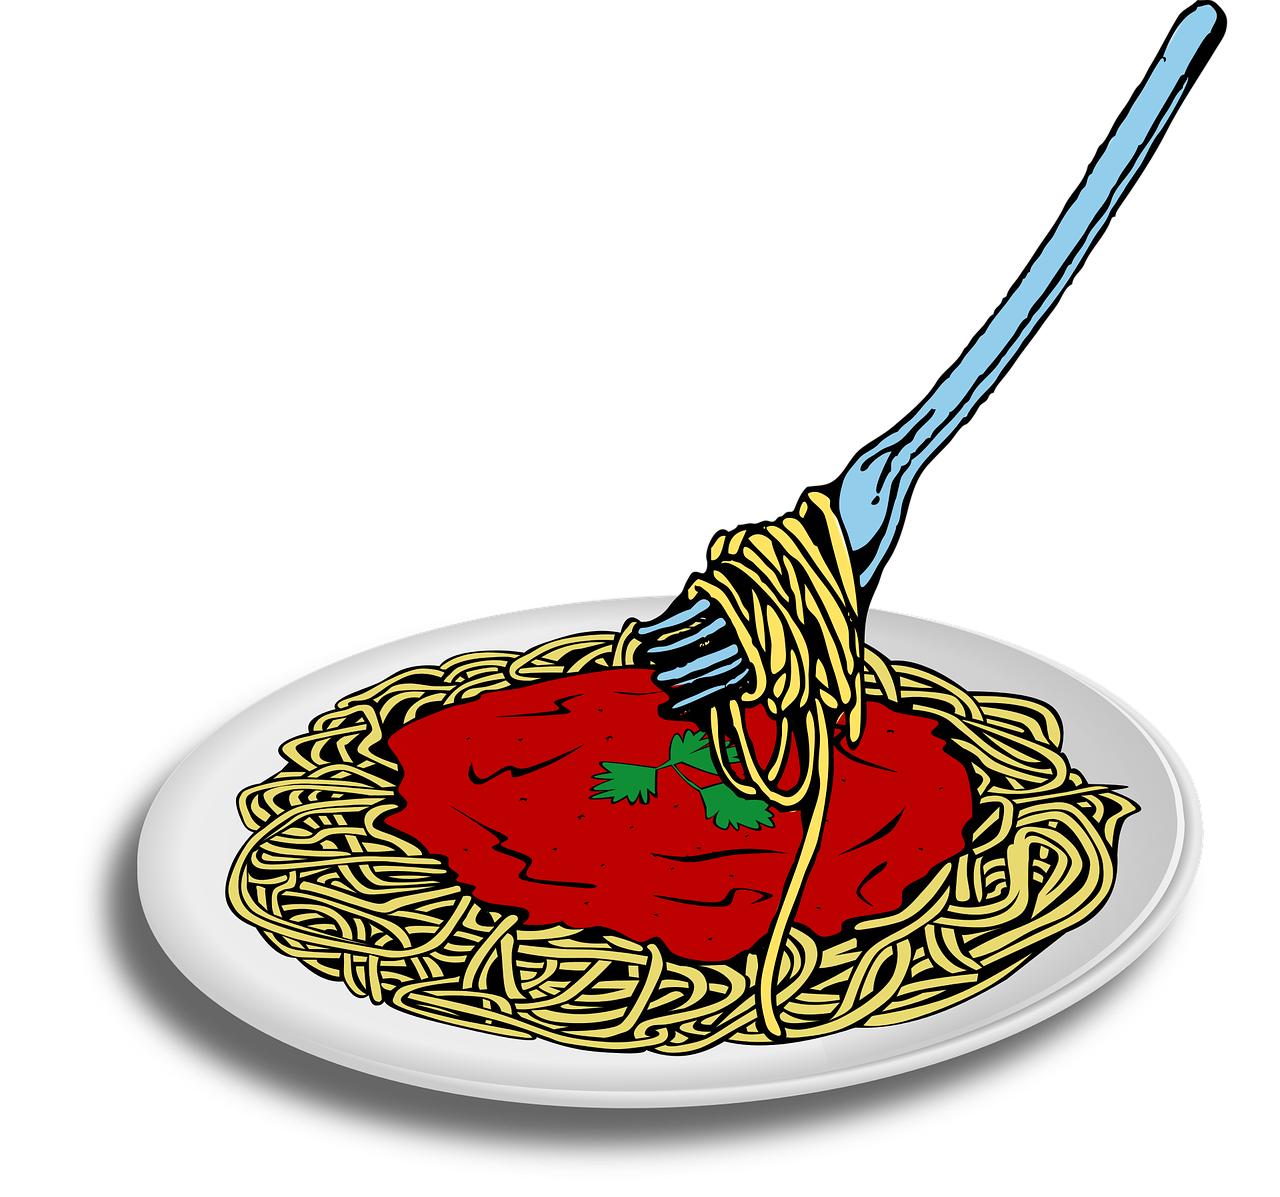 banner freeuse Pasta spaghetti with meatballs. Noodles clipart.